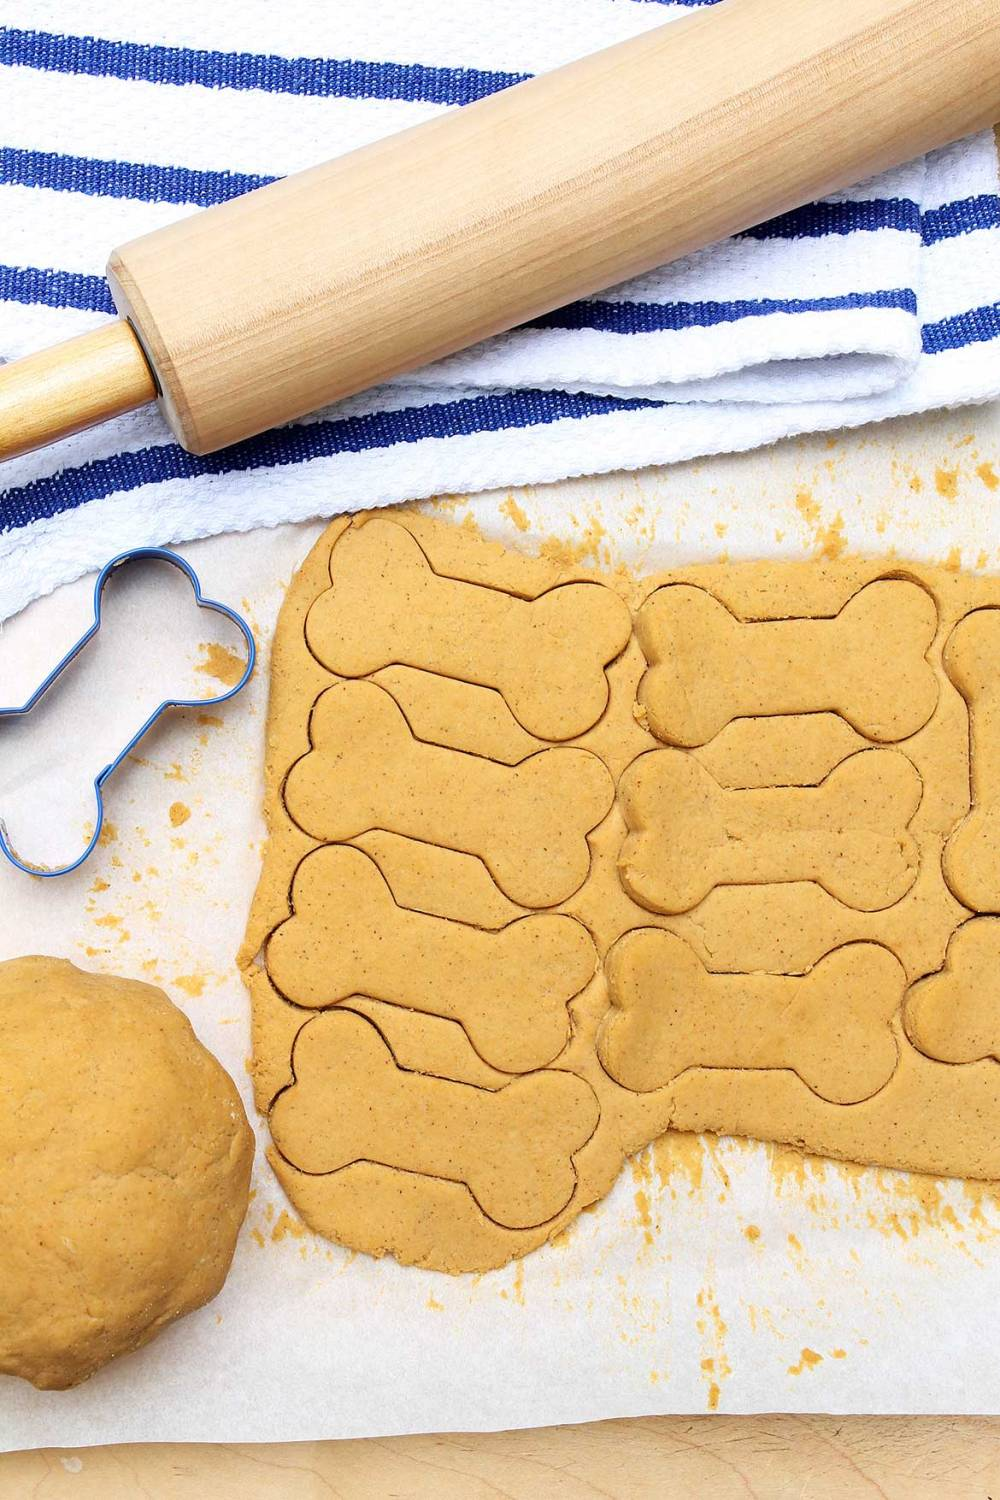 Homemade Dog Treats are easy to make and will delightyour furry friends--withingredients you approve of!